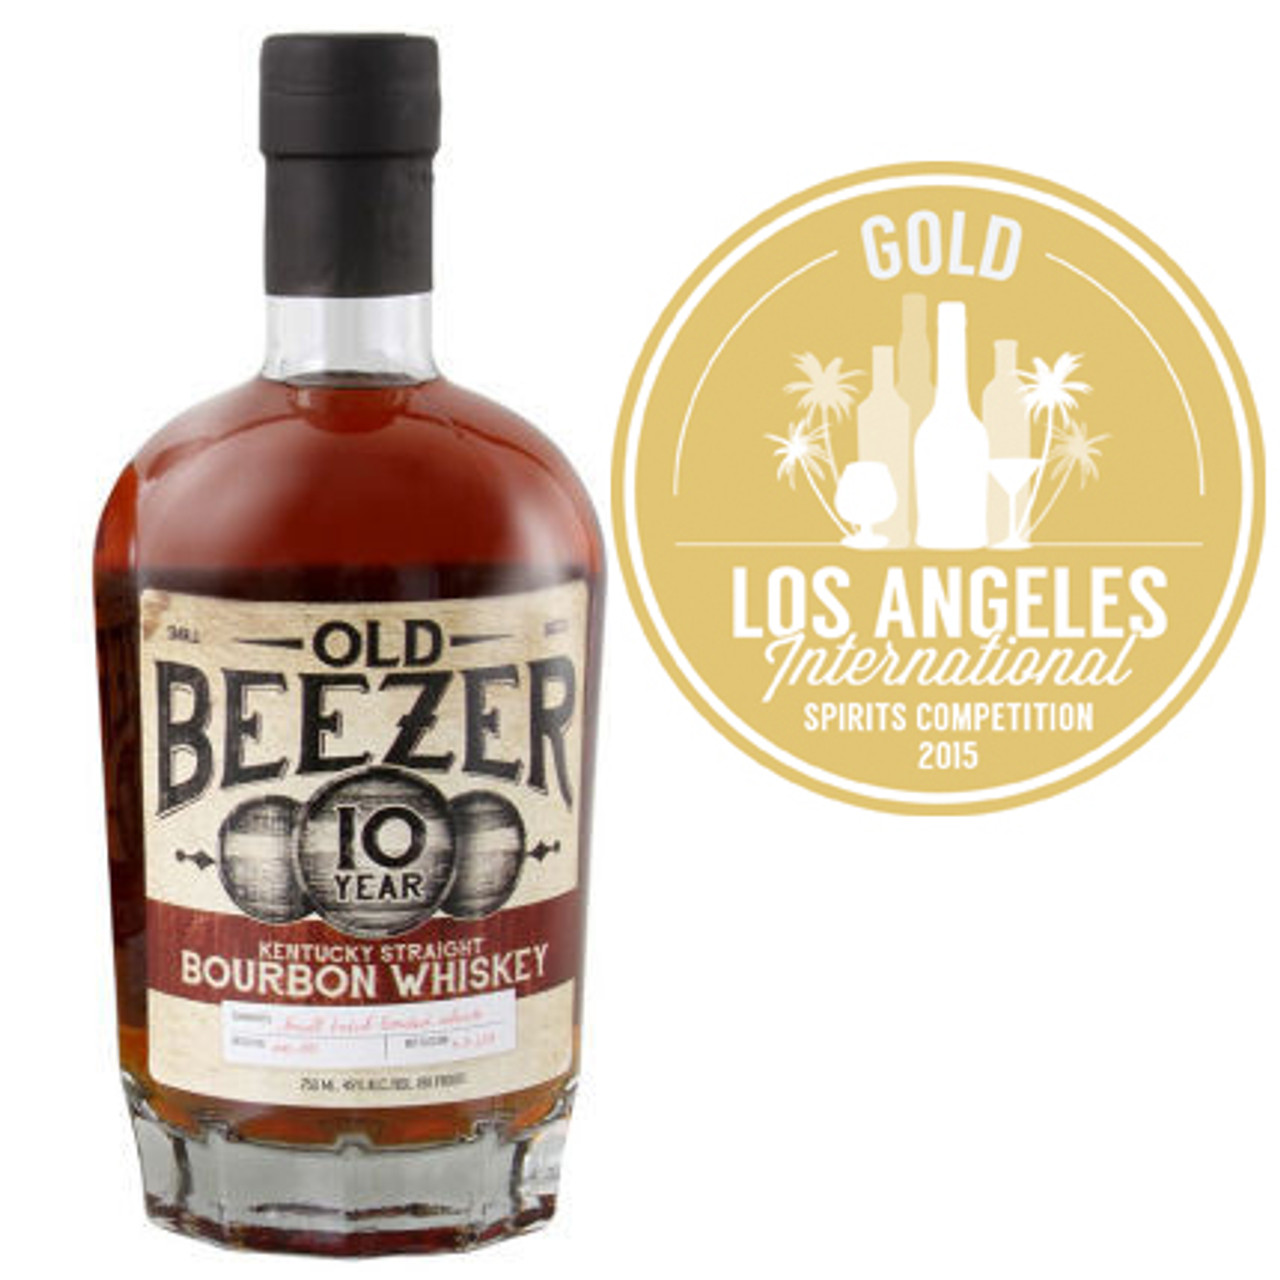 Old Beezer 10 Year Old Kentucky Straight Bourbon Whiskey 750ml